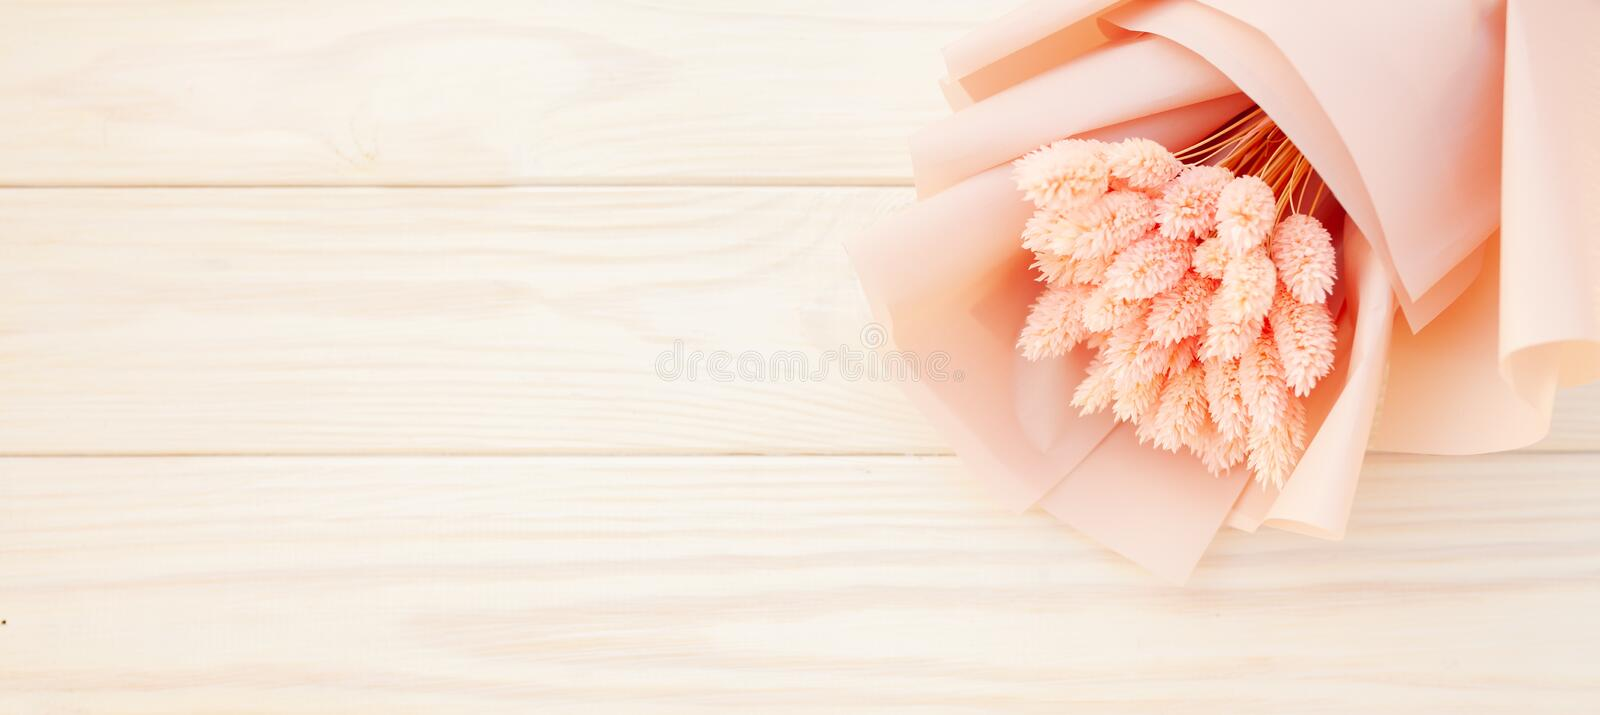 Beautiful bouquet of dry pink flowers on a wooden white background. Minimalism, space for text. Gift Card stock photo